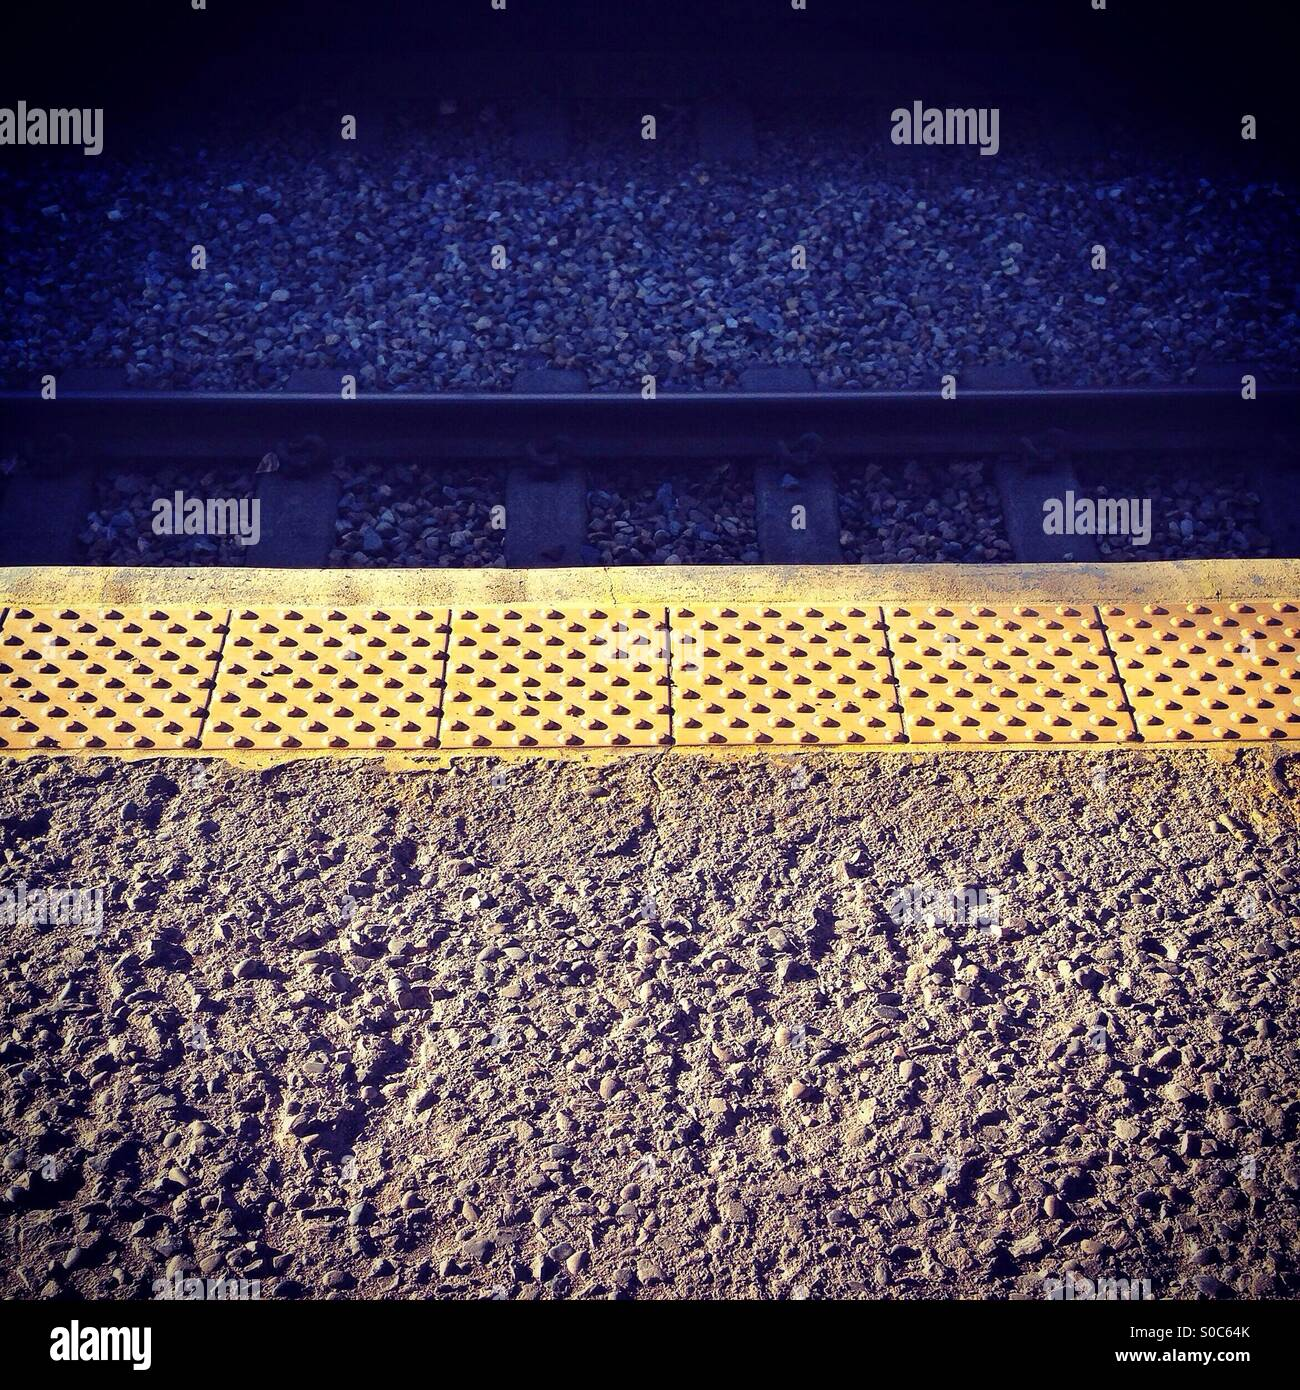 On the platform, waiting for a train, in Calgary, Alberta, Canada. - Stock Image